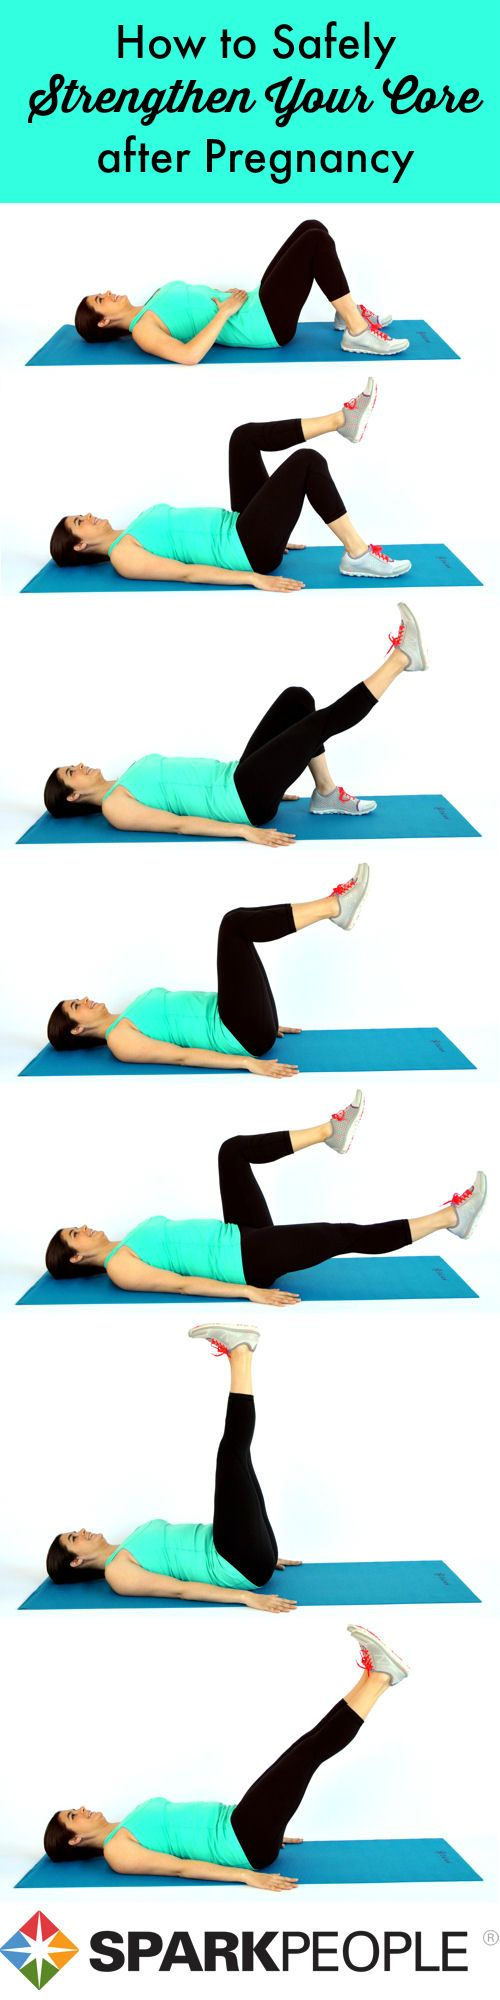 Crunches are one of the worst exercises you can do after pregnancy! In fact, there is a specific series of moves catered just for postpartum women to help repair their abs after delivery.